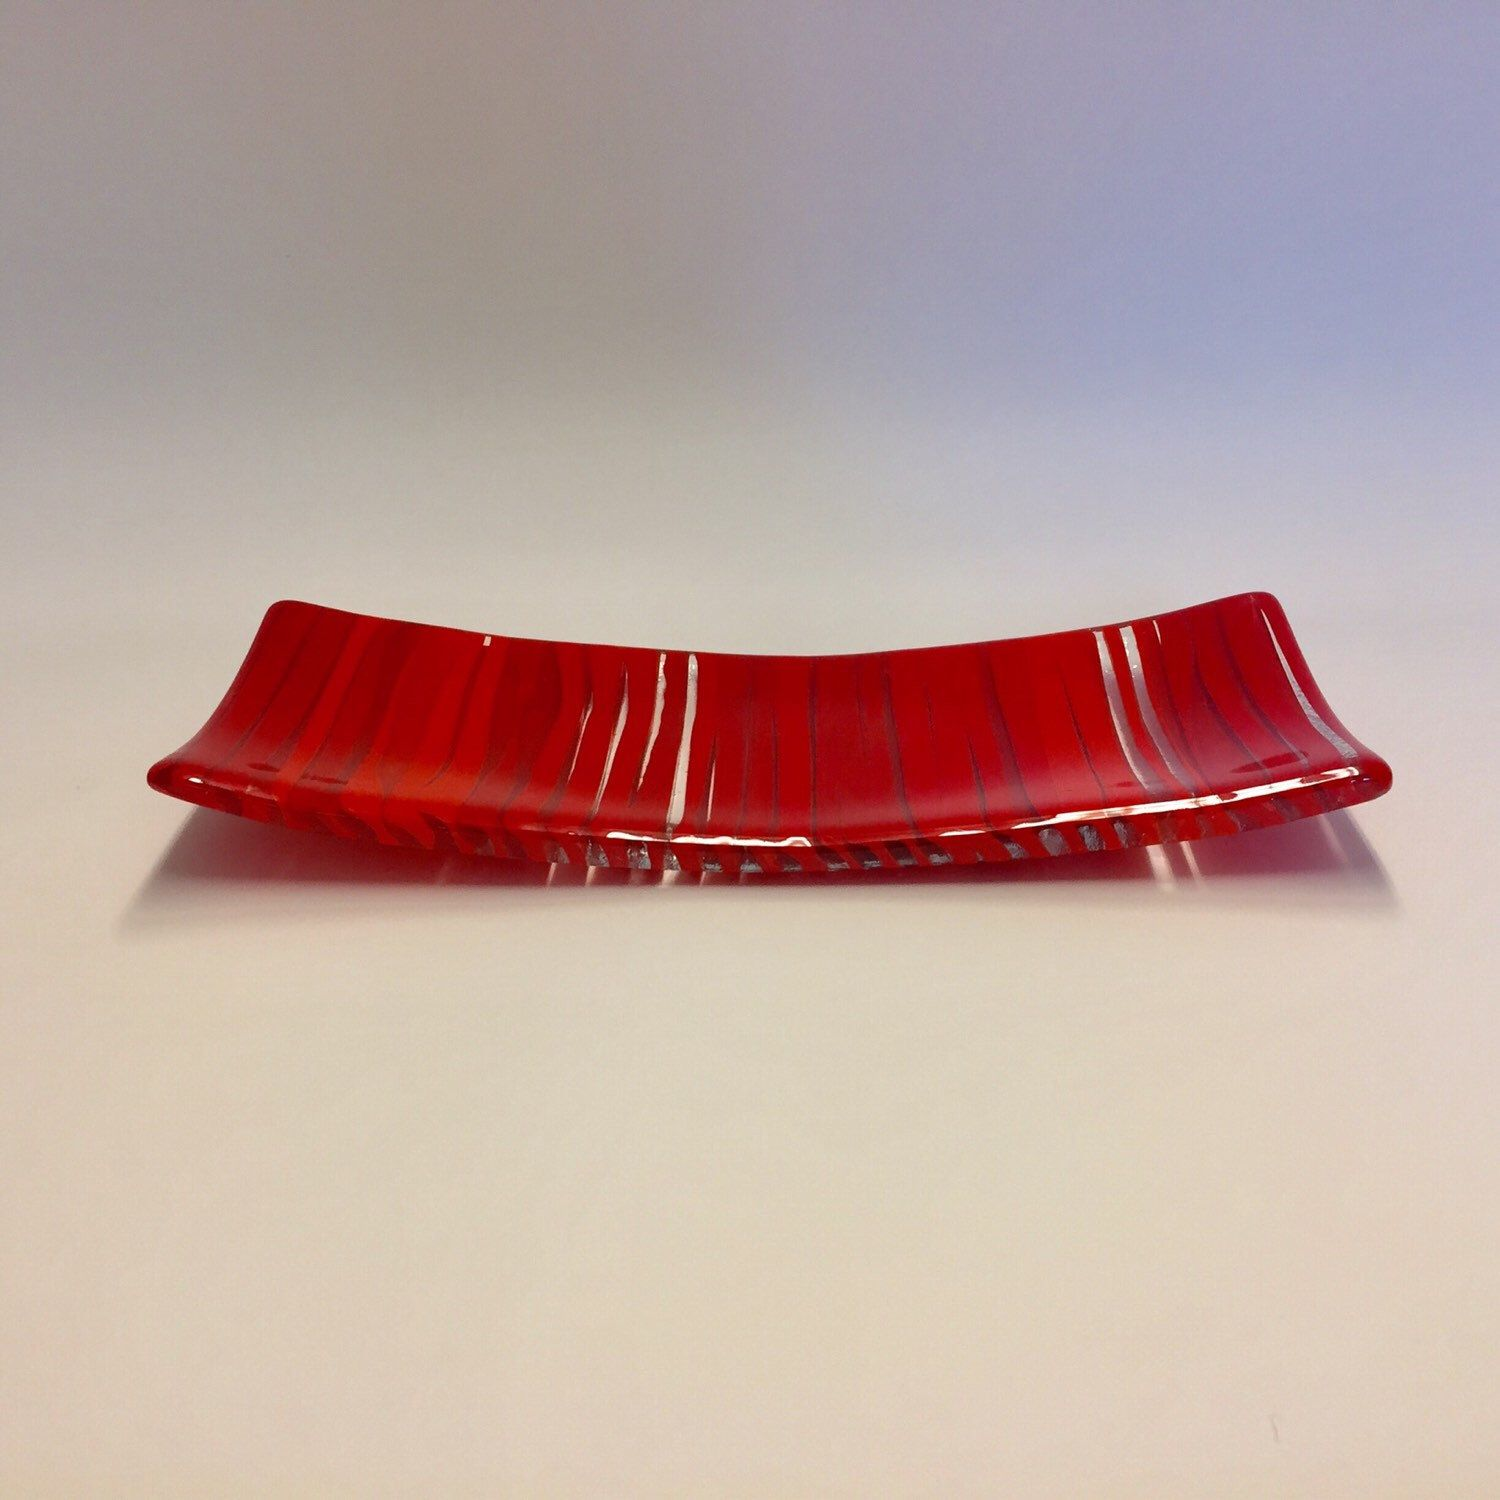 I love this red rectangular platter. It's about 13 x 5 x 0.5 inches. It's functional and decorative. It can make a beautiful Valentine's Day gift!